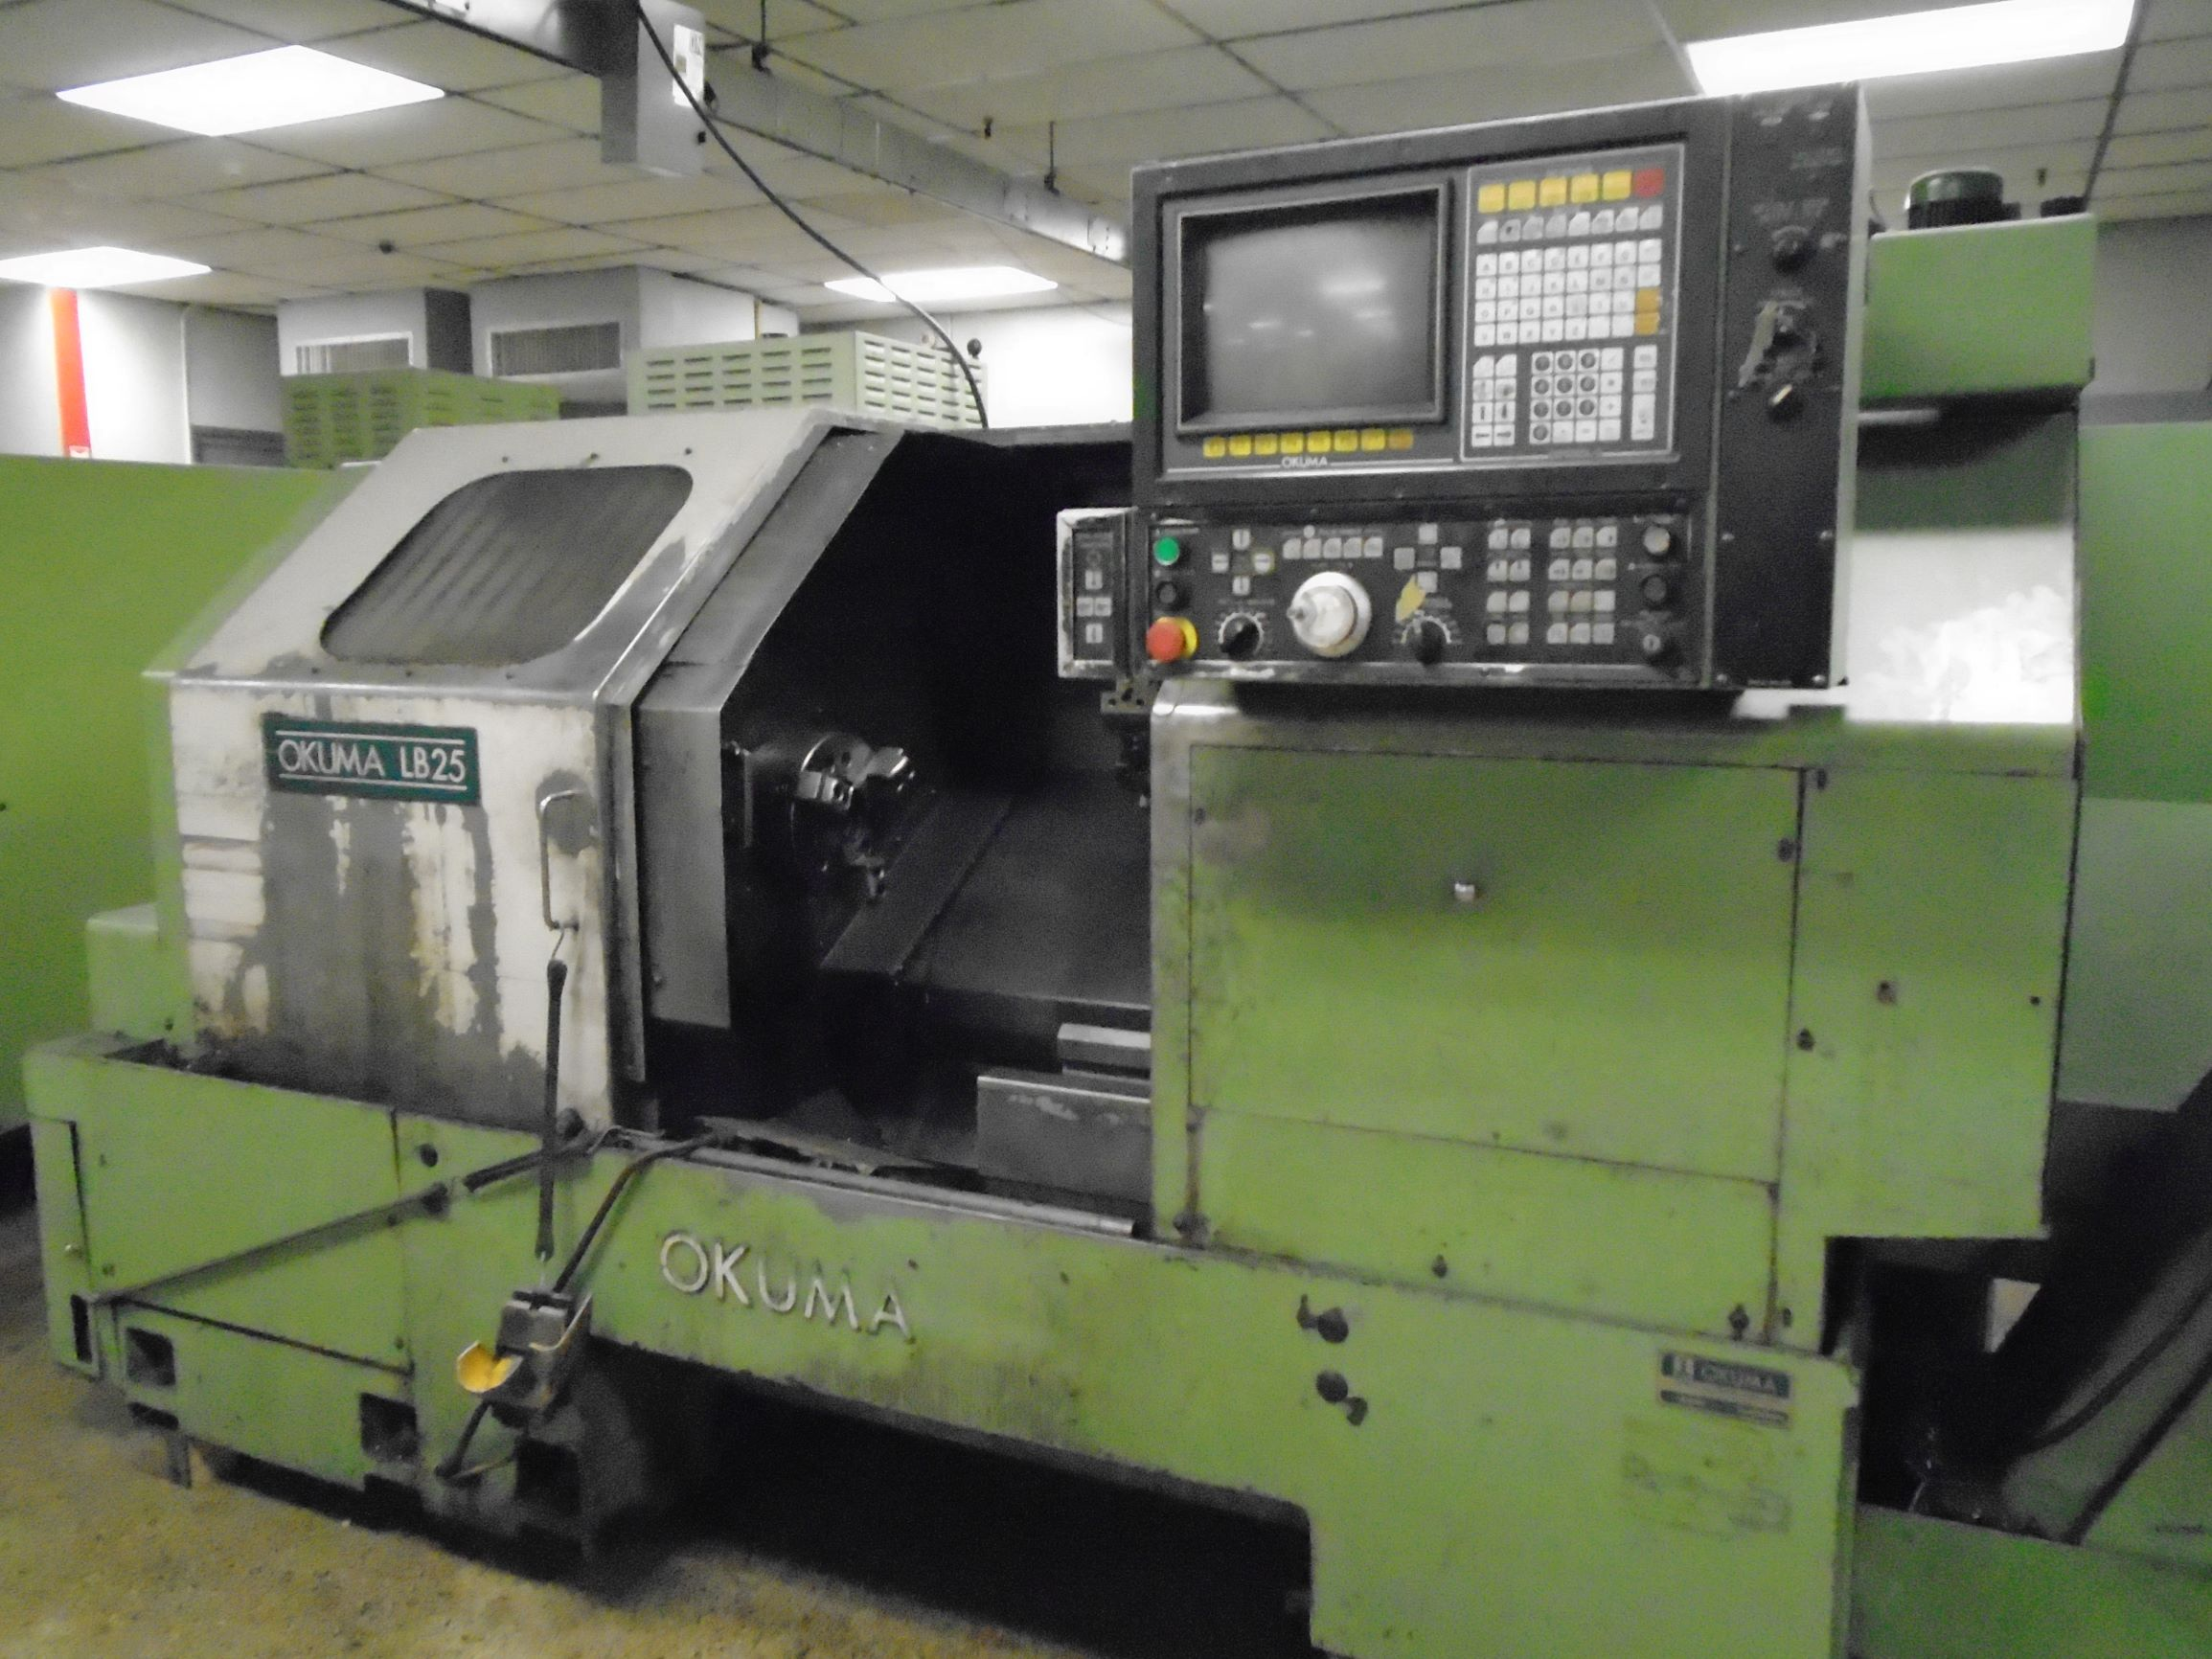 Okuma LB25 Turning Center, S/N 0089, New Approx 1990.